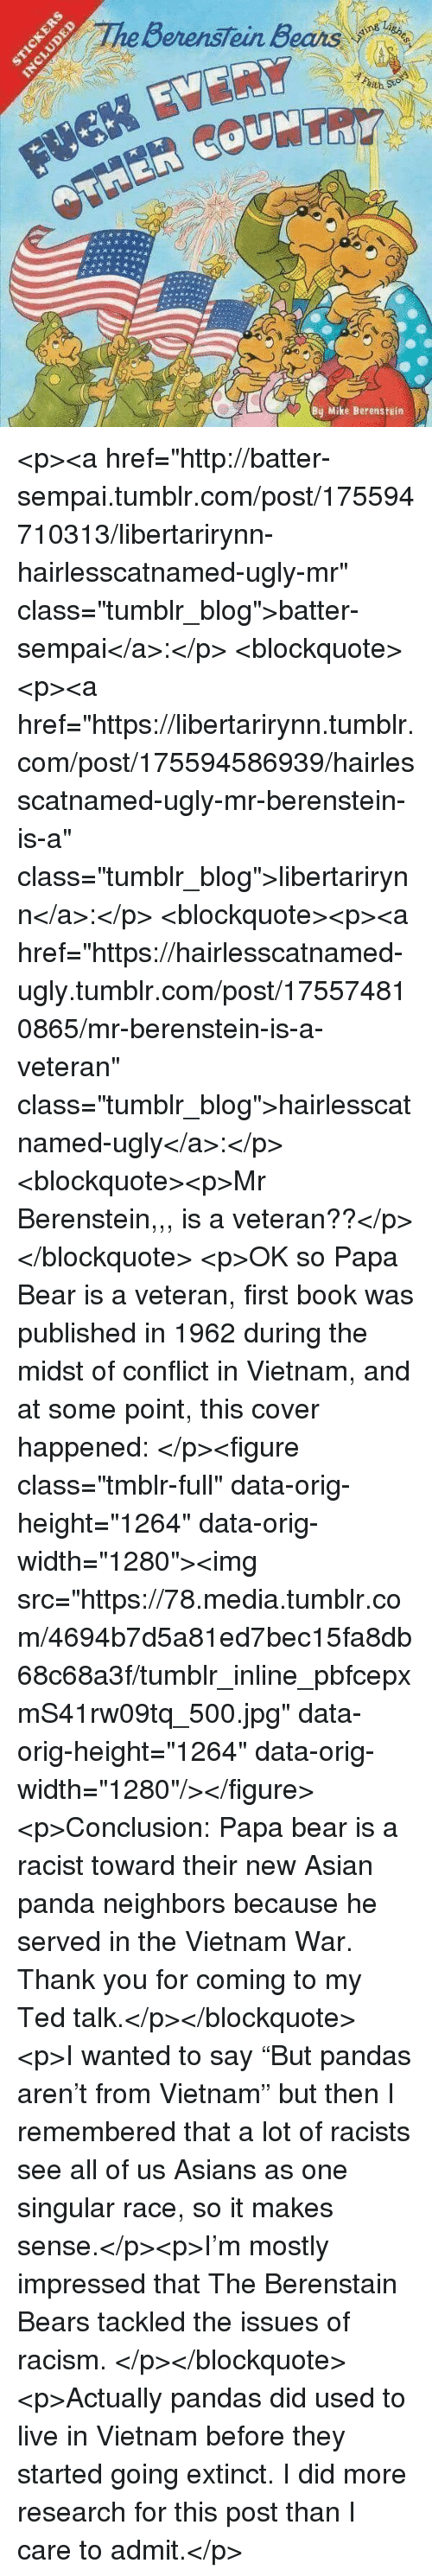 "Asian, Berenstain Bears, and Racism: BerensTein Bears  ith  By Mike Berenstein <p><a href=""http://batter-sempai.tumblr.com/post/175594710313/libertarirynn-hairlesscatnamed-ugly-mr"" class=""tumblr_blog"">batter-sempai</a>:</p>  <blockquote><p><a href=""https://libertarirynn.tumblr.com/post/175594586939/hairlesscatnamed-ugly-mr-berenstein-is-a"" class=""tumblr_blog"">libertarirynn</a>:</p>  <blockquote><p><a href=""https://hairlesscatnamed-ugly.tumblr.com/post/175574810865/mr-berenstein-is-a-veteran"" class=""tumblr_blog"">hairlesscatnamed-ugly</a>:</p>  <blockquote><p>Mr Berenstein,,, is a veteran??</p></blockquote>  <p>OK so Papa Bear is a veteran, first book was published in 1962 during the midst of conflict in Vietnam, and at some point, this cover happened: </p><figure class=""tmblr-full"" data-orig-height=""1264"" data-orig-width=""1280""><img src=""https://78.media.tumblr.com/4694b7d5a81ed7bec15fa8db68c68a3f/tumblr_inline_pbfcepxmS41rw09tq_500.jpg"" data-orig-height=""1264"" data-orig-width=""1280""/></figure><p>Conclusion: Papa bear is a racist toward their new Asian panda neighbors because he served in the Vietnam War. Thank you for coming to my Ted talk.</p></blockquote>  <p>I wanted to say ""But pandas aren't from Vietnam"" but then I remembered that a lot of racists see all of us Asians as one singular race, so it makes sense.</p><p>I'm mostly impressed that The Berenstain Bears tackled the issues of racism. </p></blockquote>  <p>Actually pandas did used to live in Vietnam before they started going extinct. I did more research for this post than I care to admit.</p>"